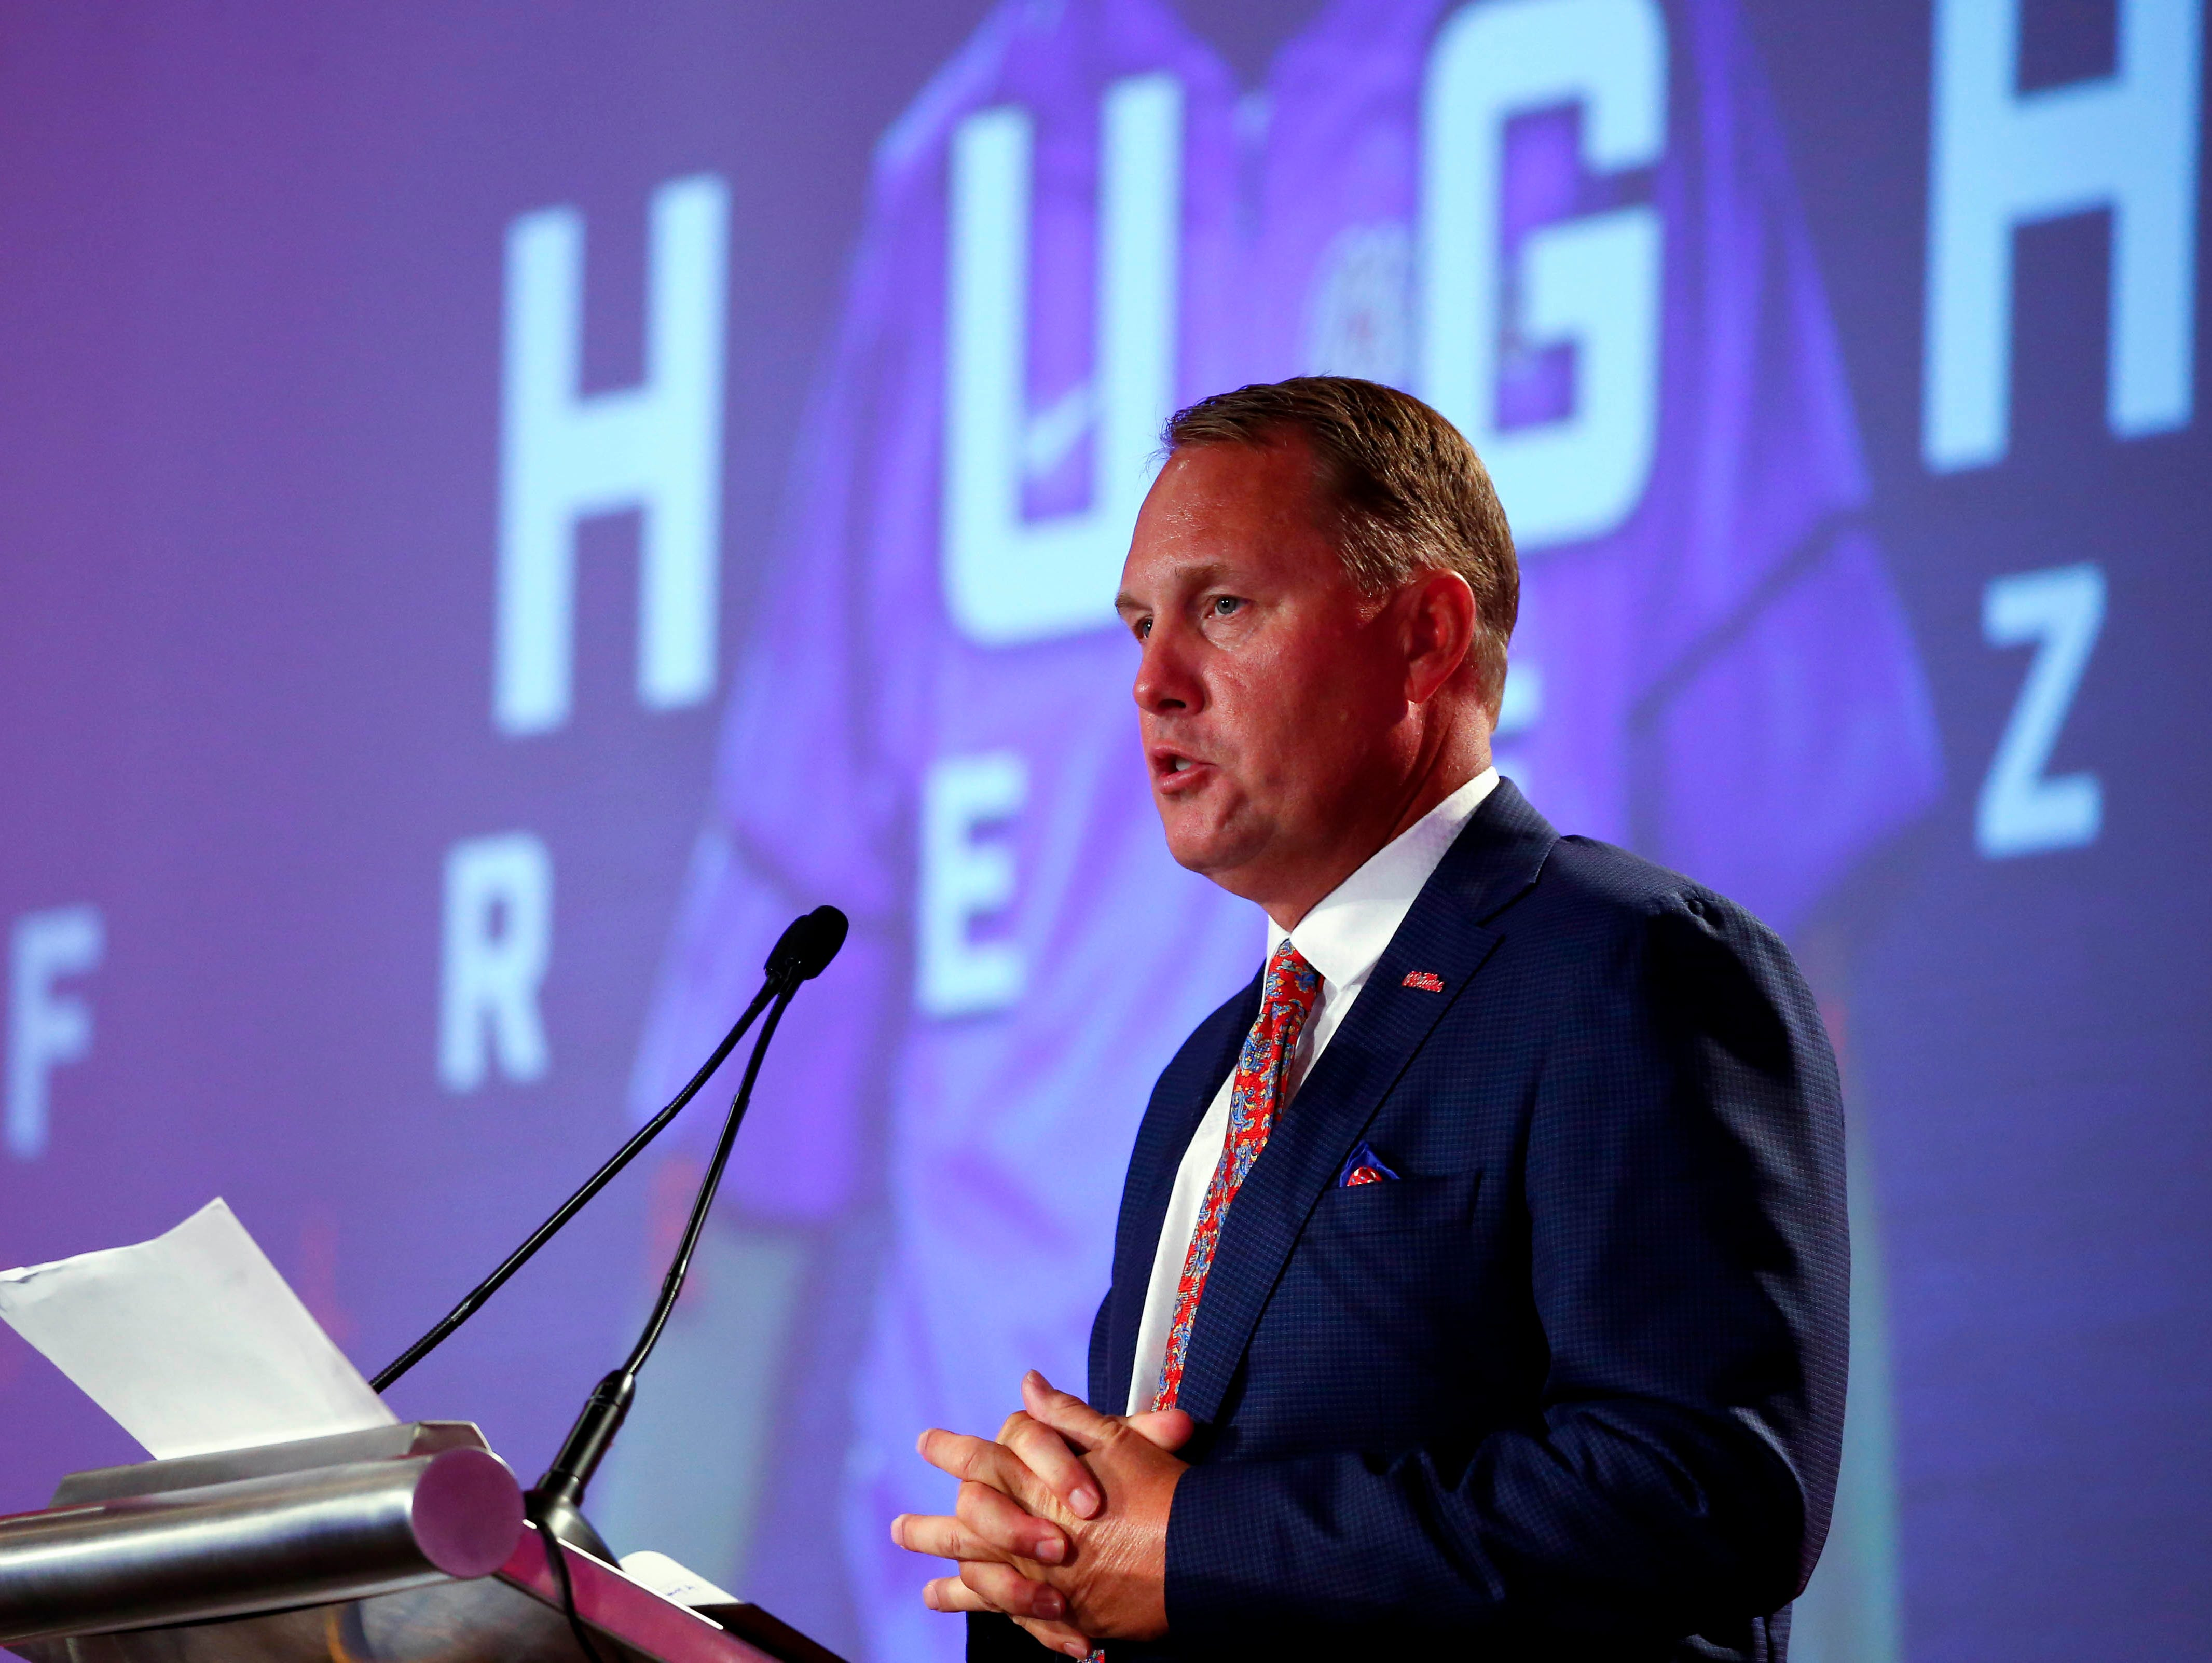 Hugh Freeze addressed the media in Hoover Thursday and admitted his program has created the drama that surrounds it.